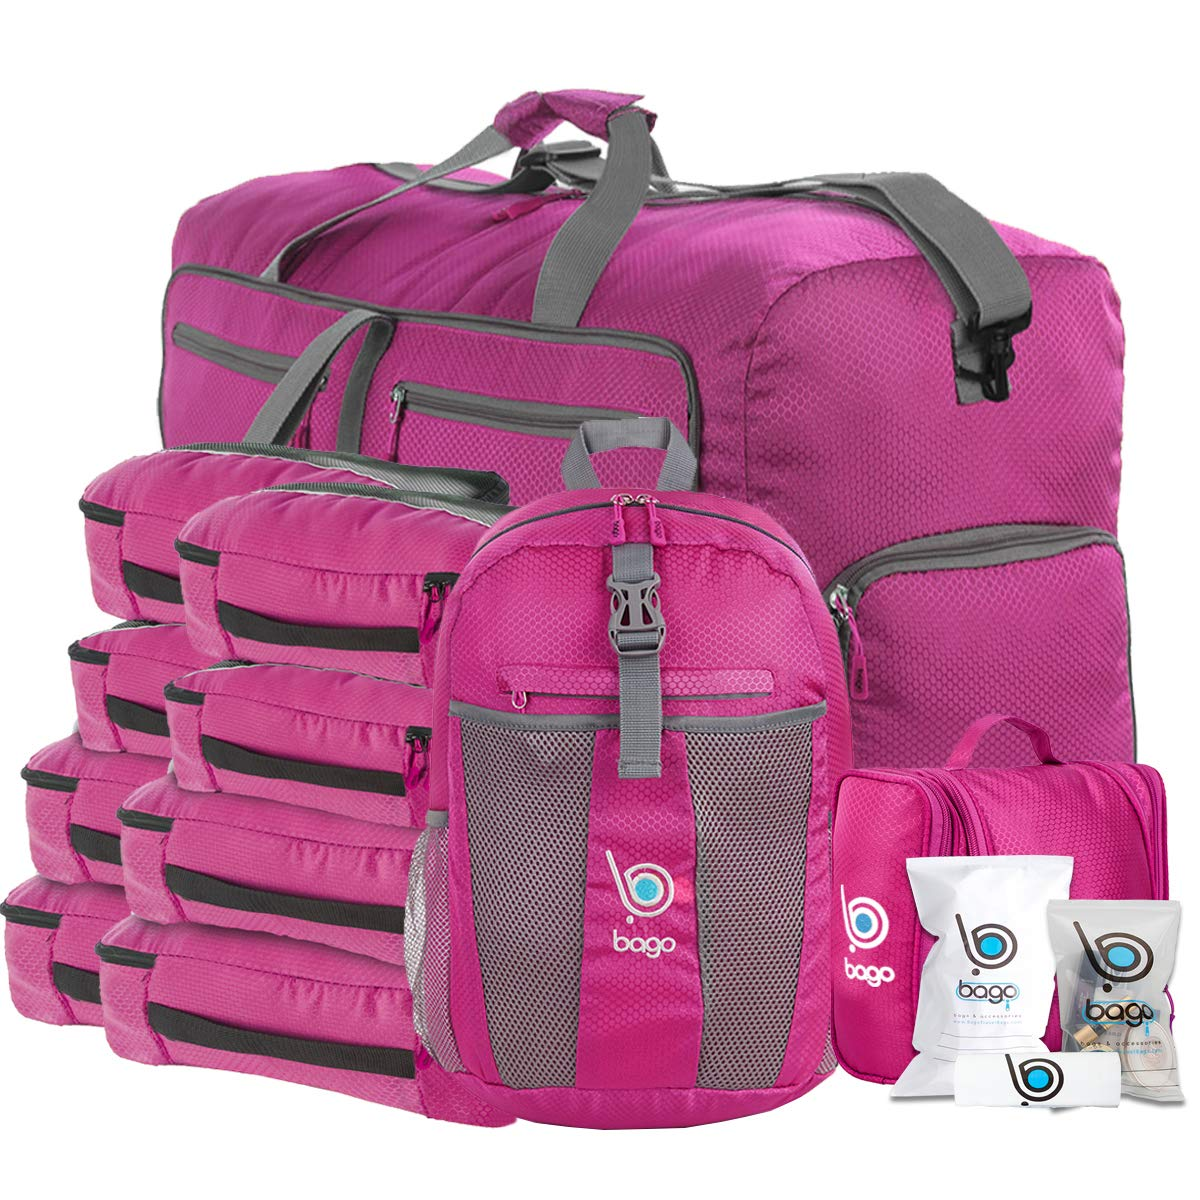 Bago Travel Luggage Set - 27'' Duffle - 8 Packing Cubes - Backpack & Toiletry Bag (Pink)